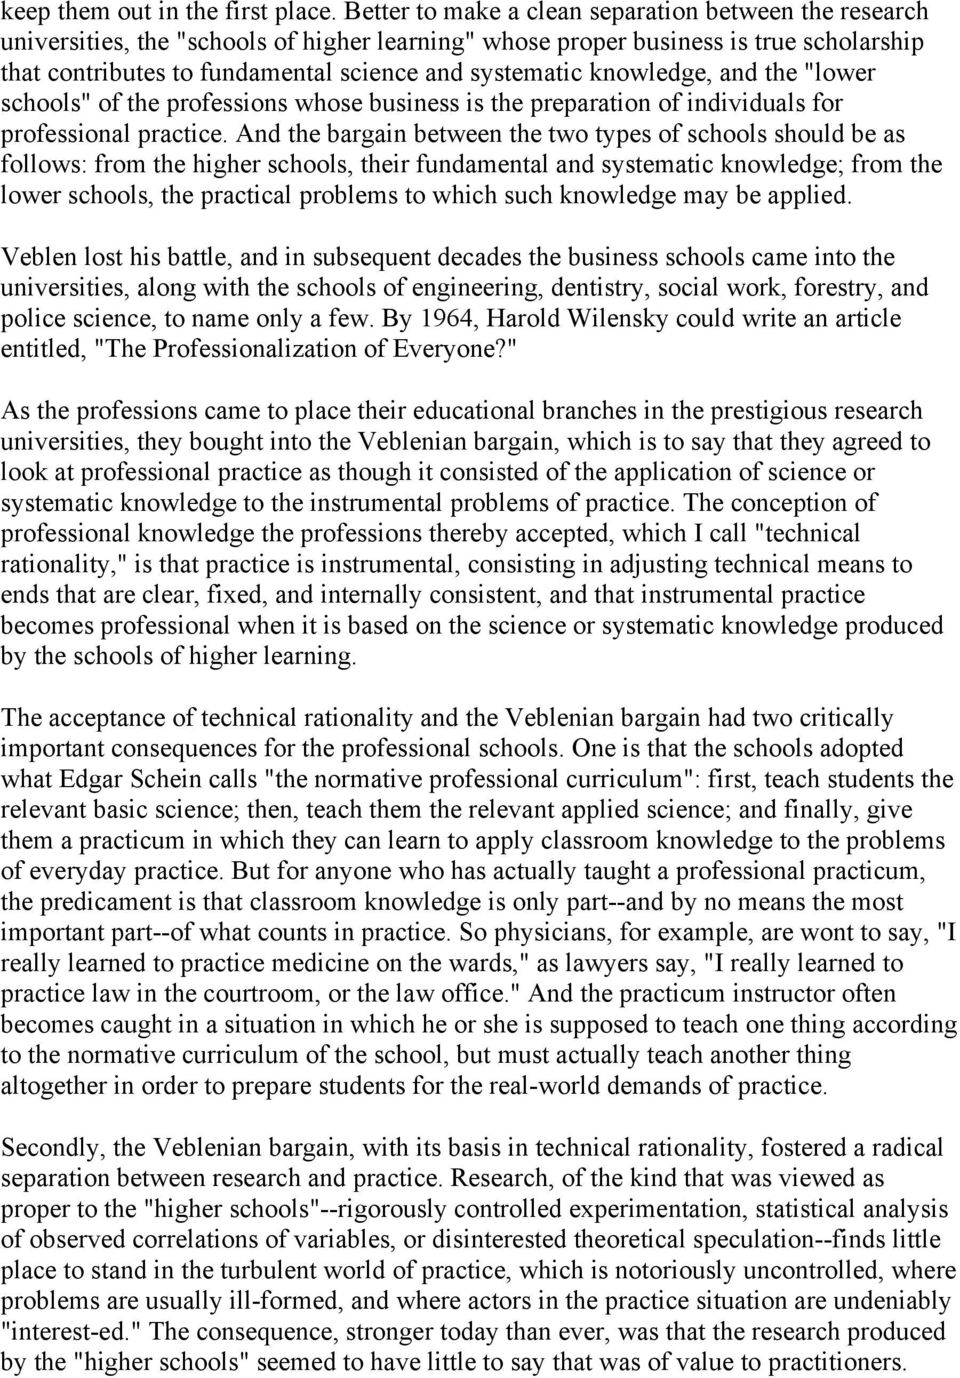 "knowledge, and the ""lower schools"" of the professions whose business is the preparation of individuals for professional practice."